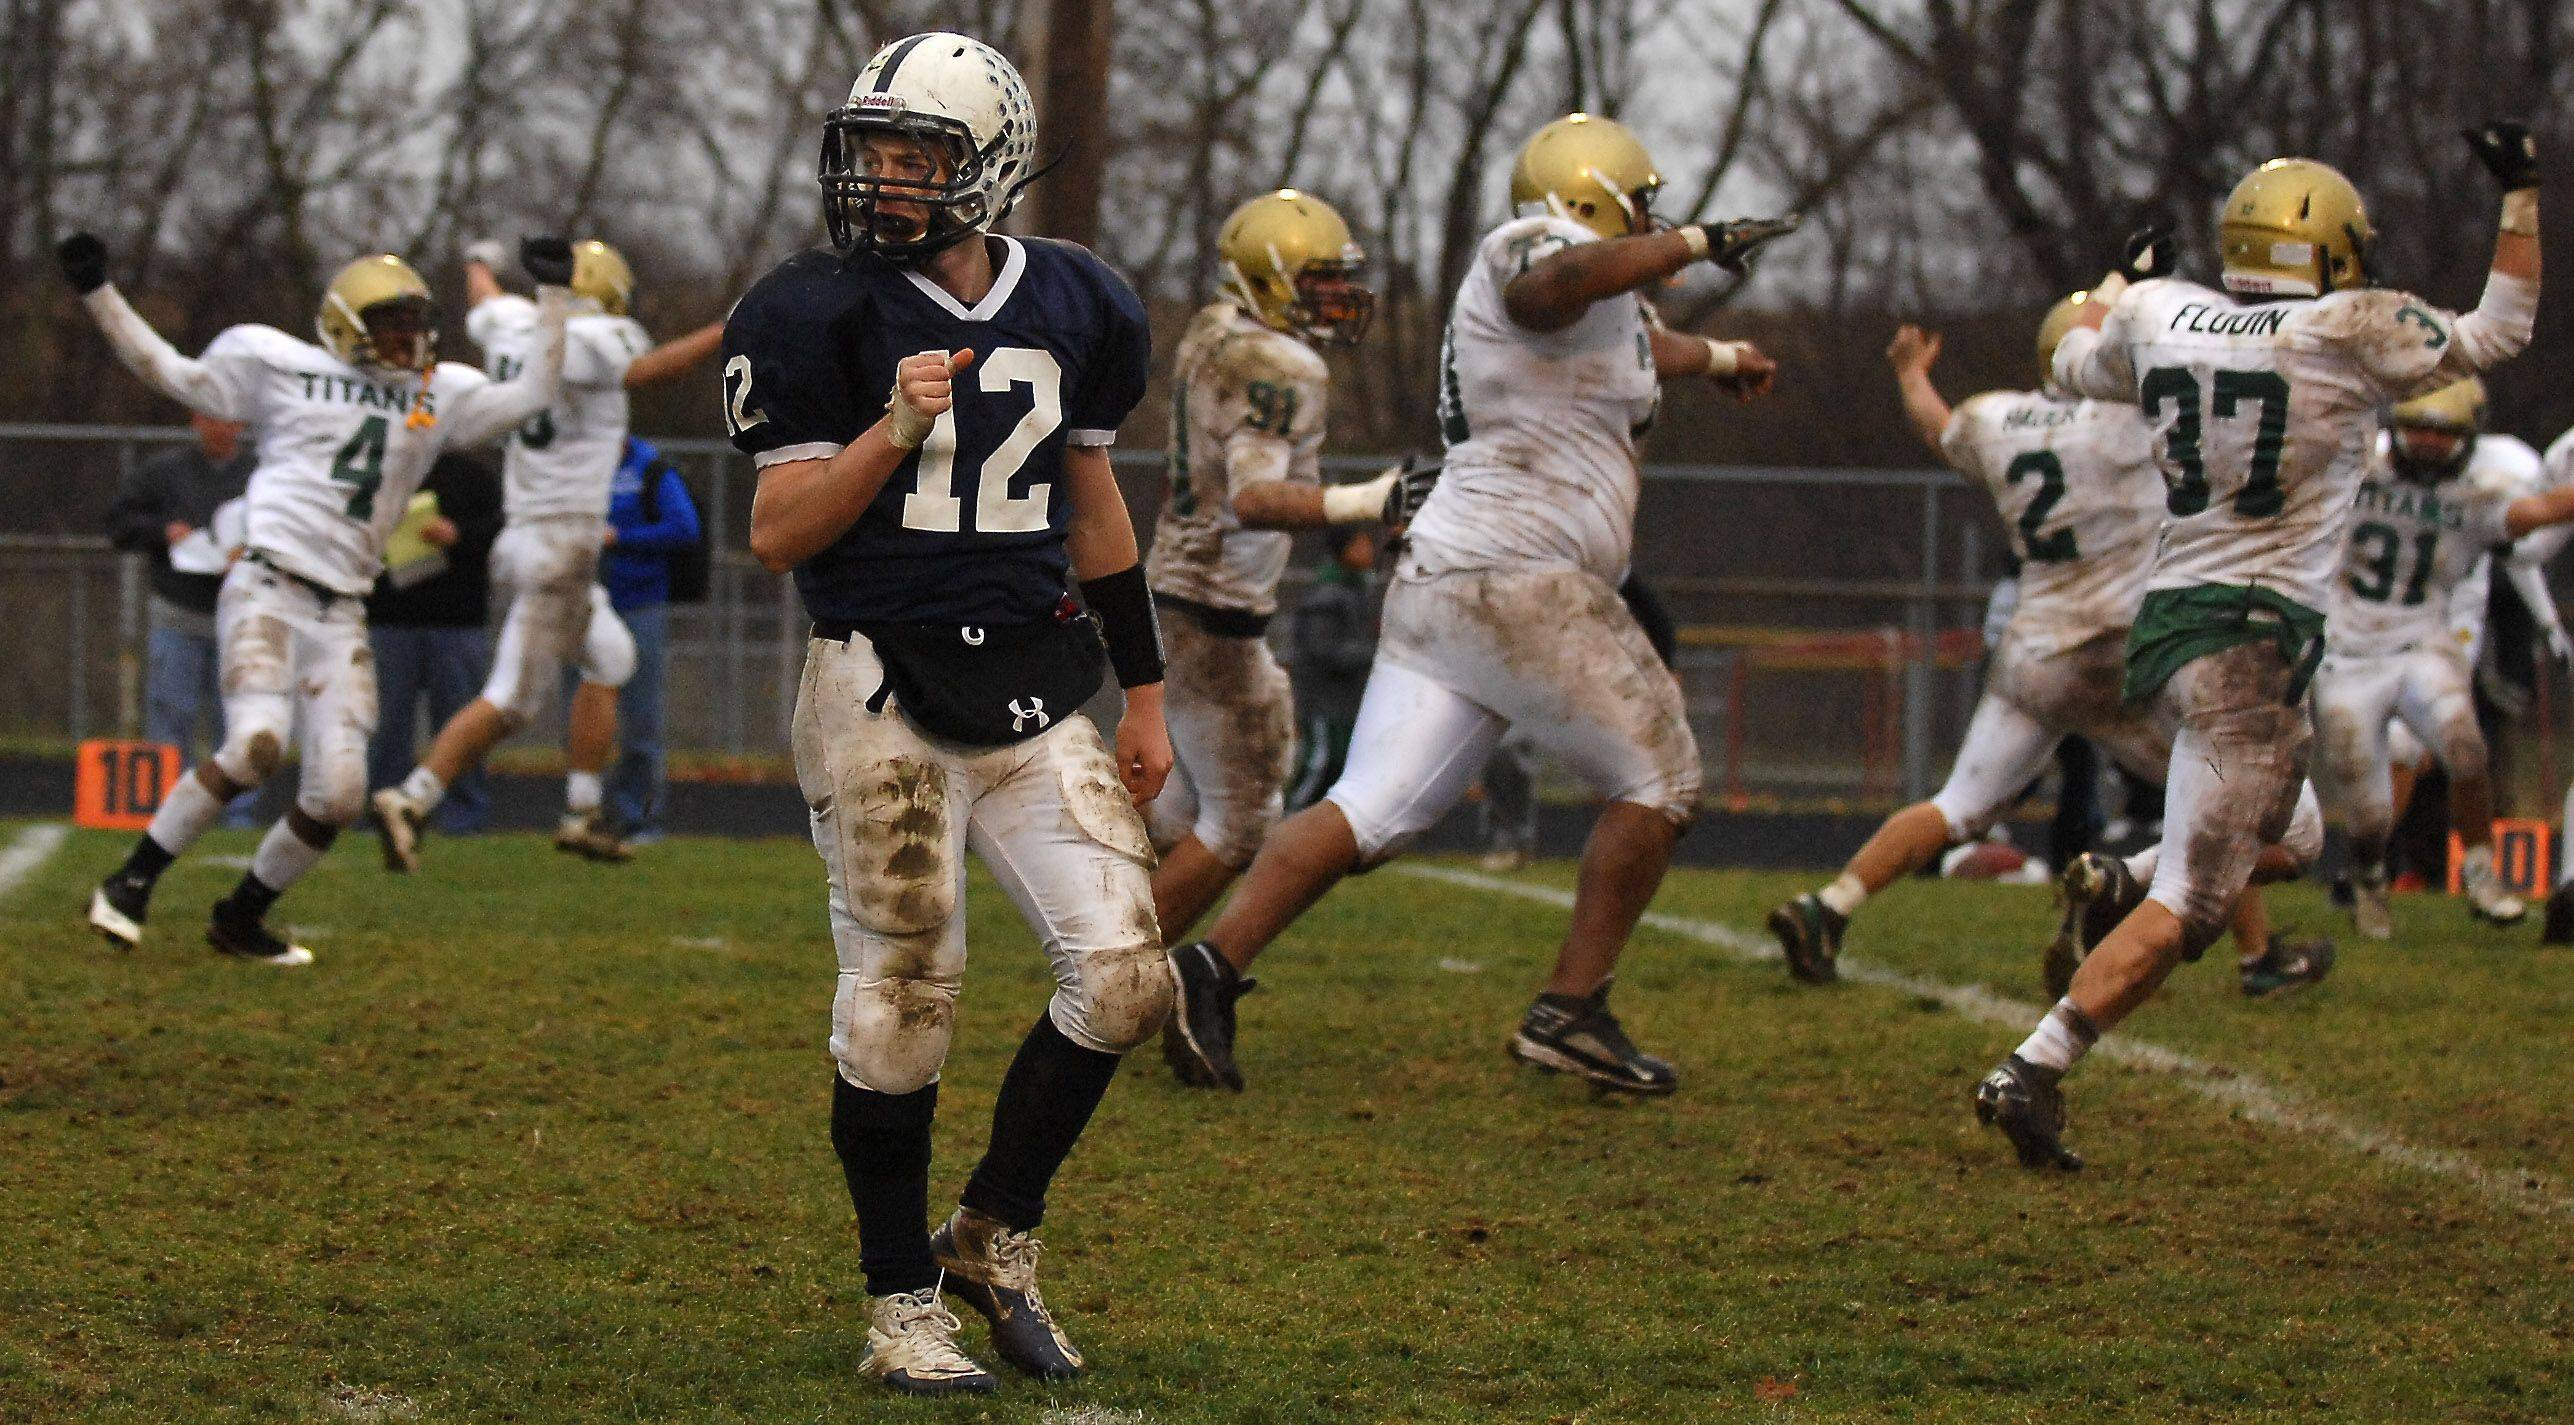 Cary-Grove quarterback Corey Laktas looks at the end zone after his 4th down pass in overtime fell incomplete to give the win to Rockford Boylan during Saturday's playoff game in Cary.